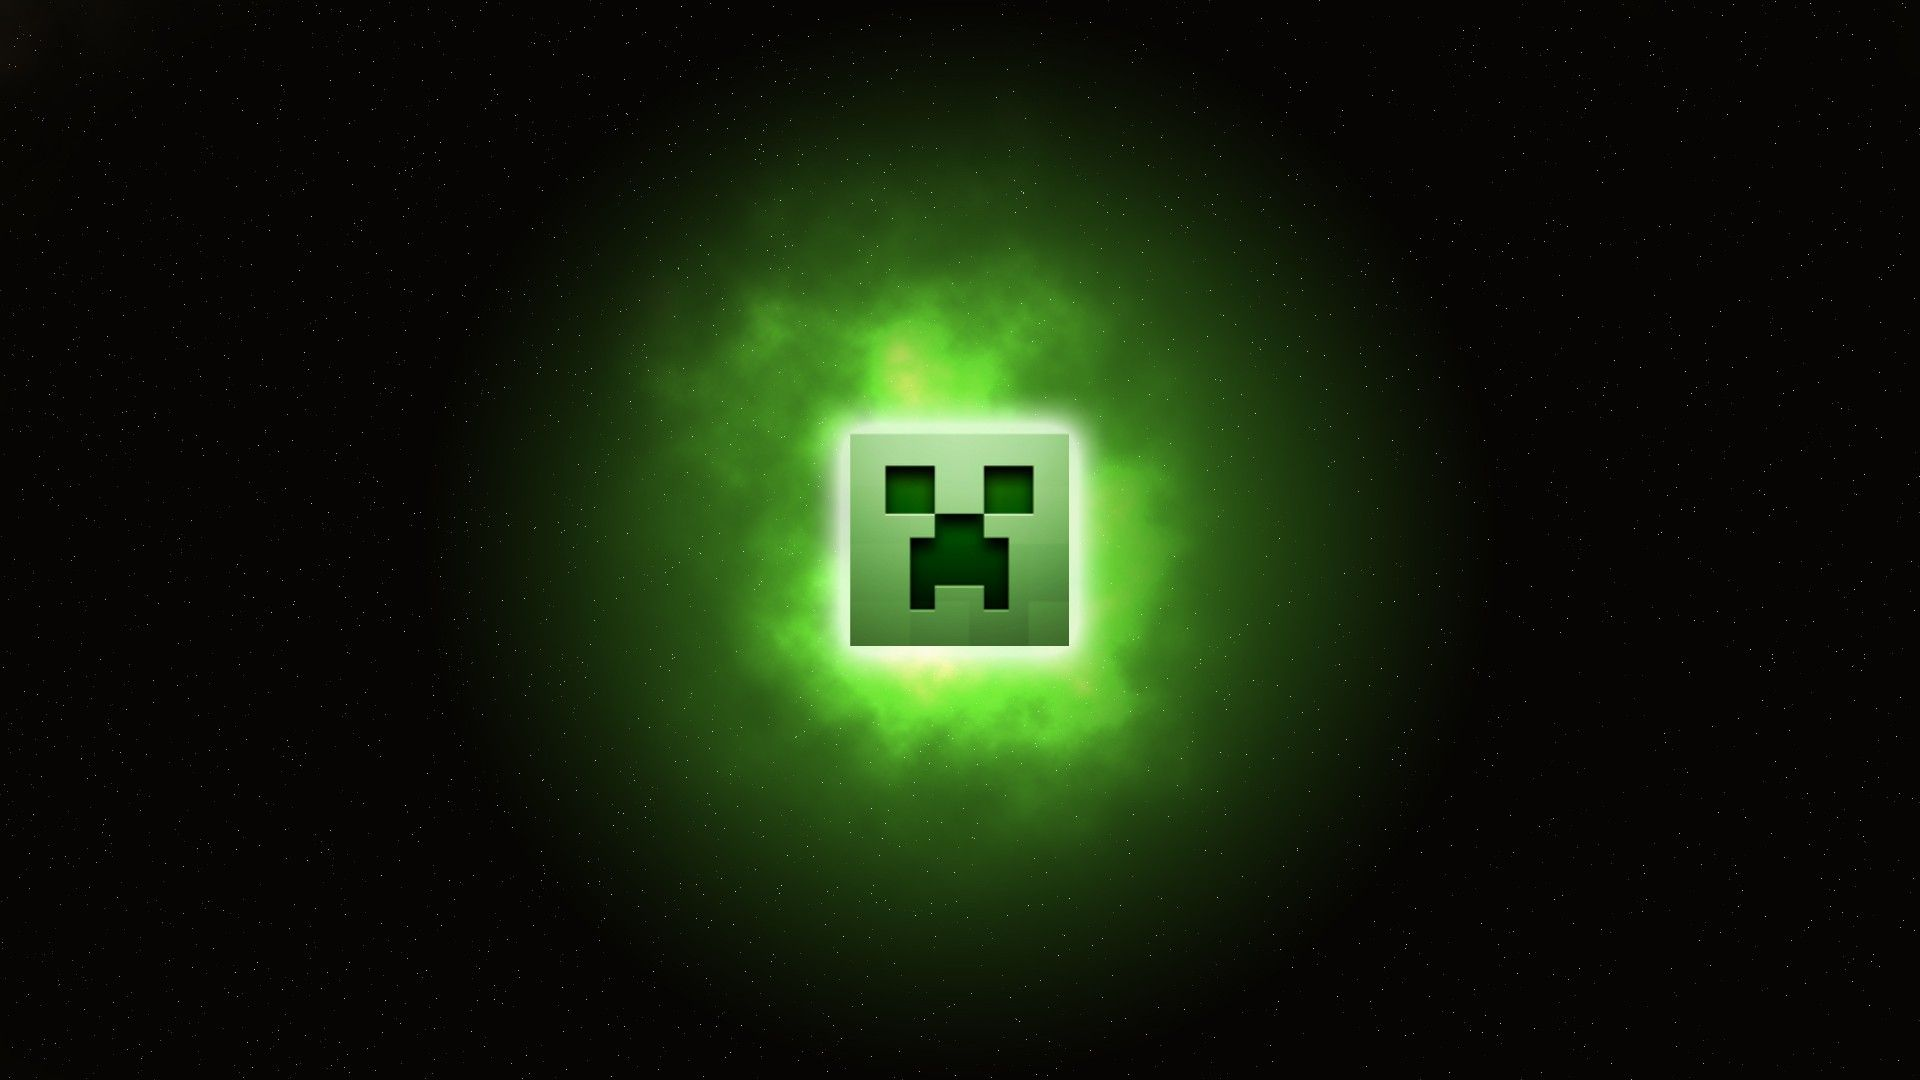 Minecraft Wallpaper Creeper Hd Download Wallpapers In Hd Quality Games Hd Wallpaper Imagenes De Minecraft Wallpapers Wallpapers Imagenes De Minecraft Hd